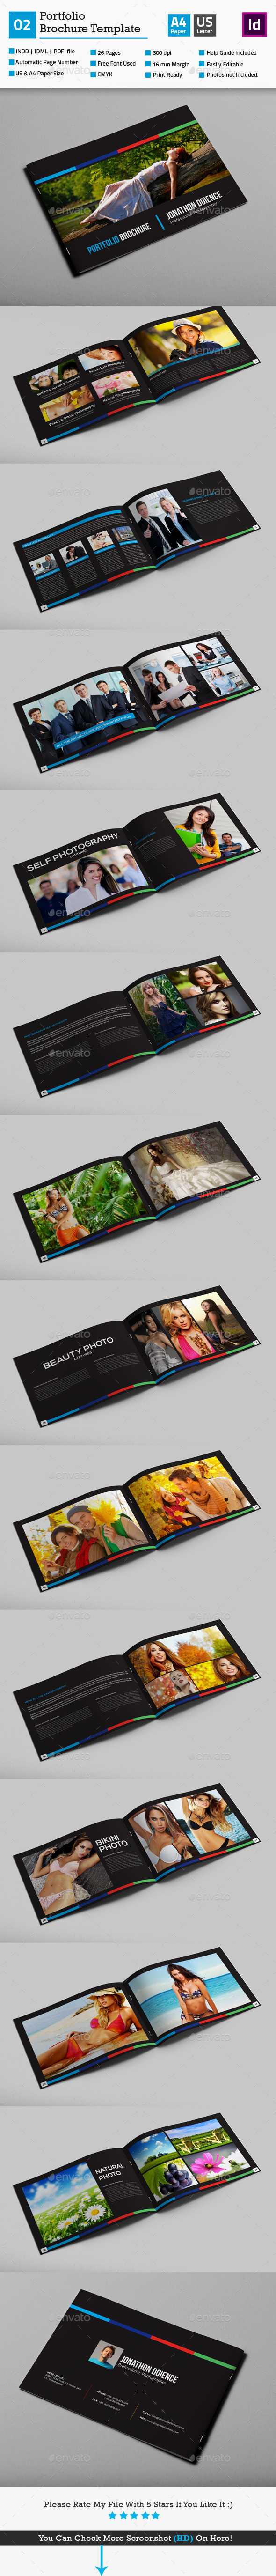 GraphicRiver Portfolio Brochure Template 02 10813460